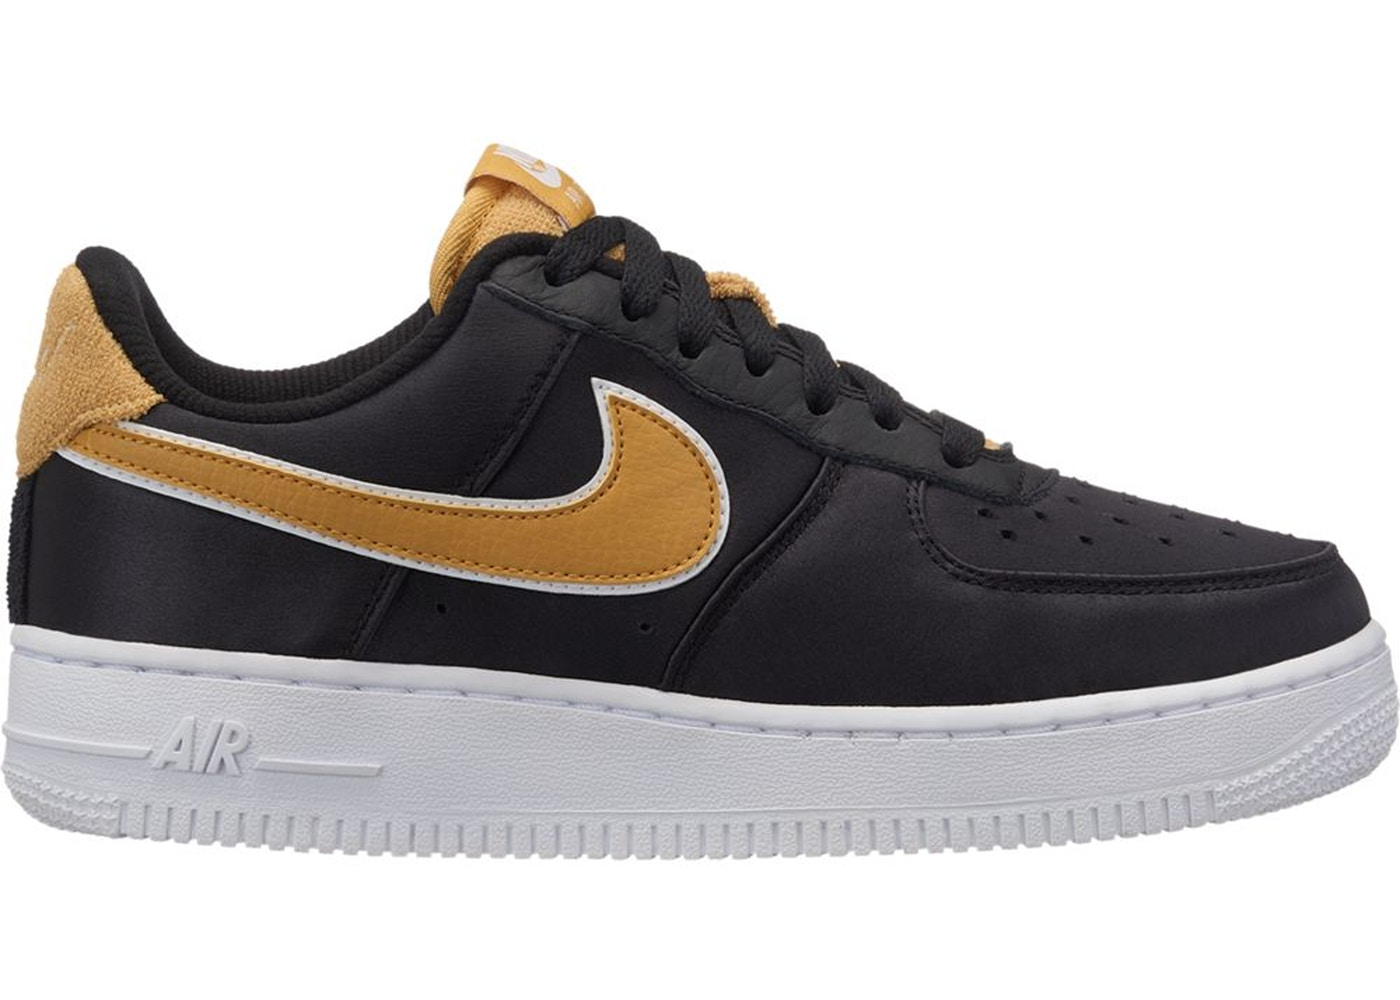 Air Force 1 Low Satin Black Wheat Gold (W) - AA0287-005 082c47fb0